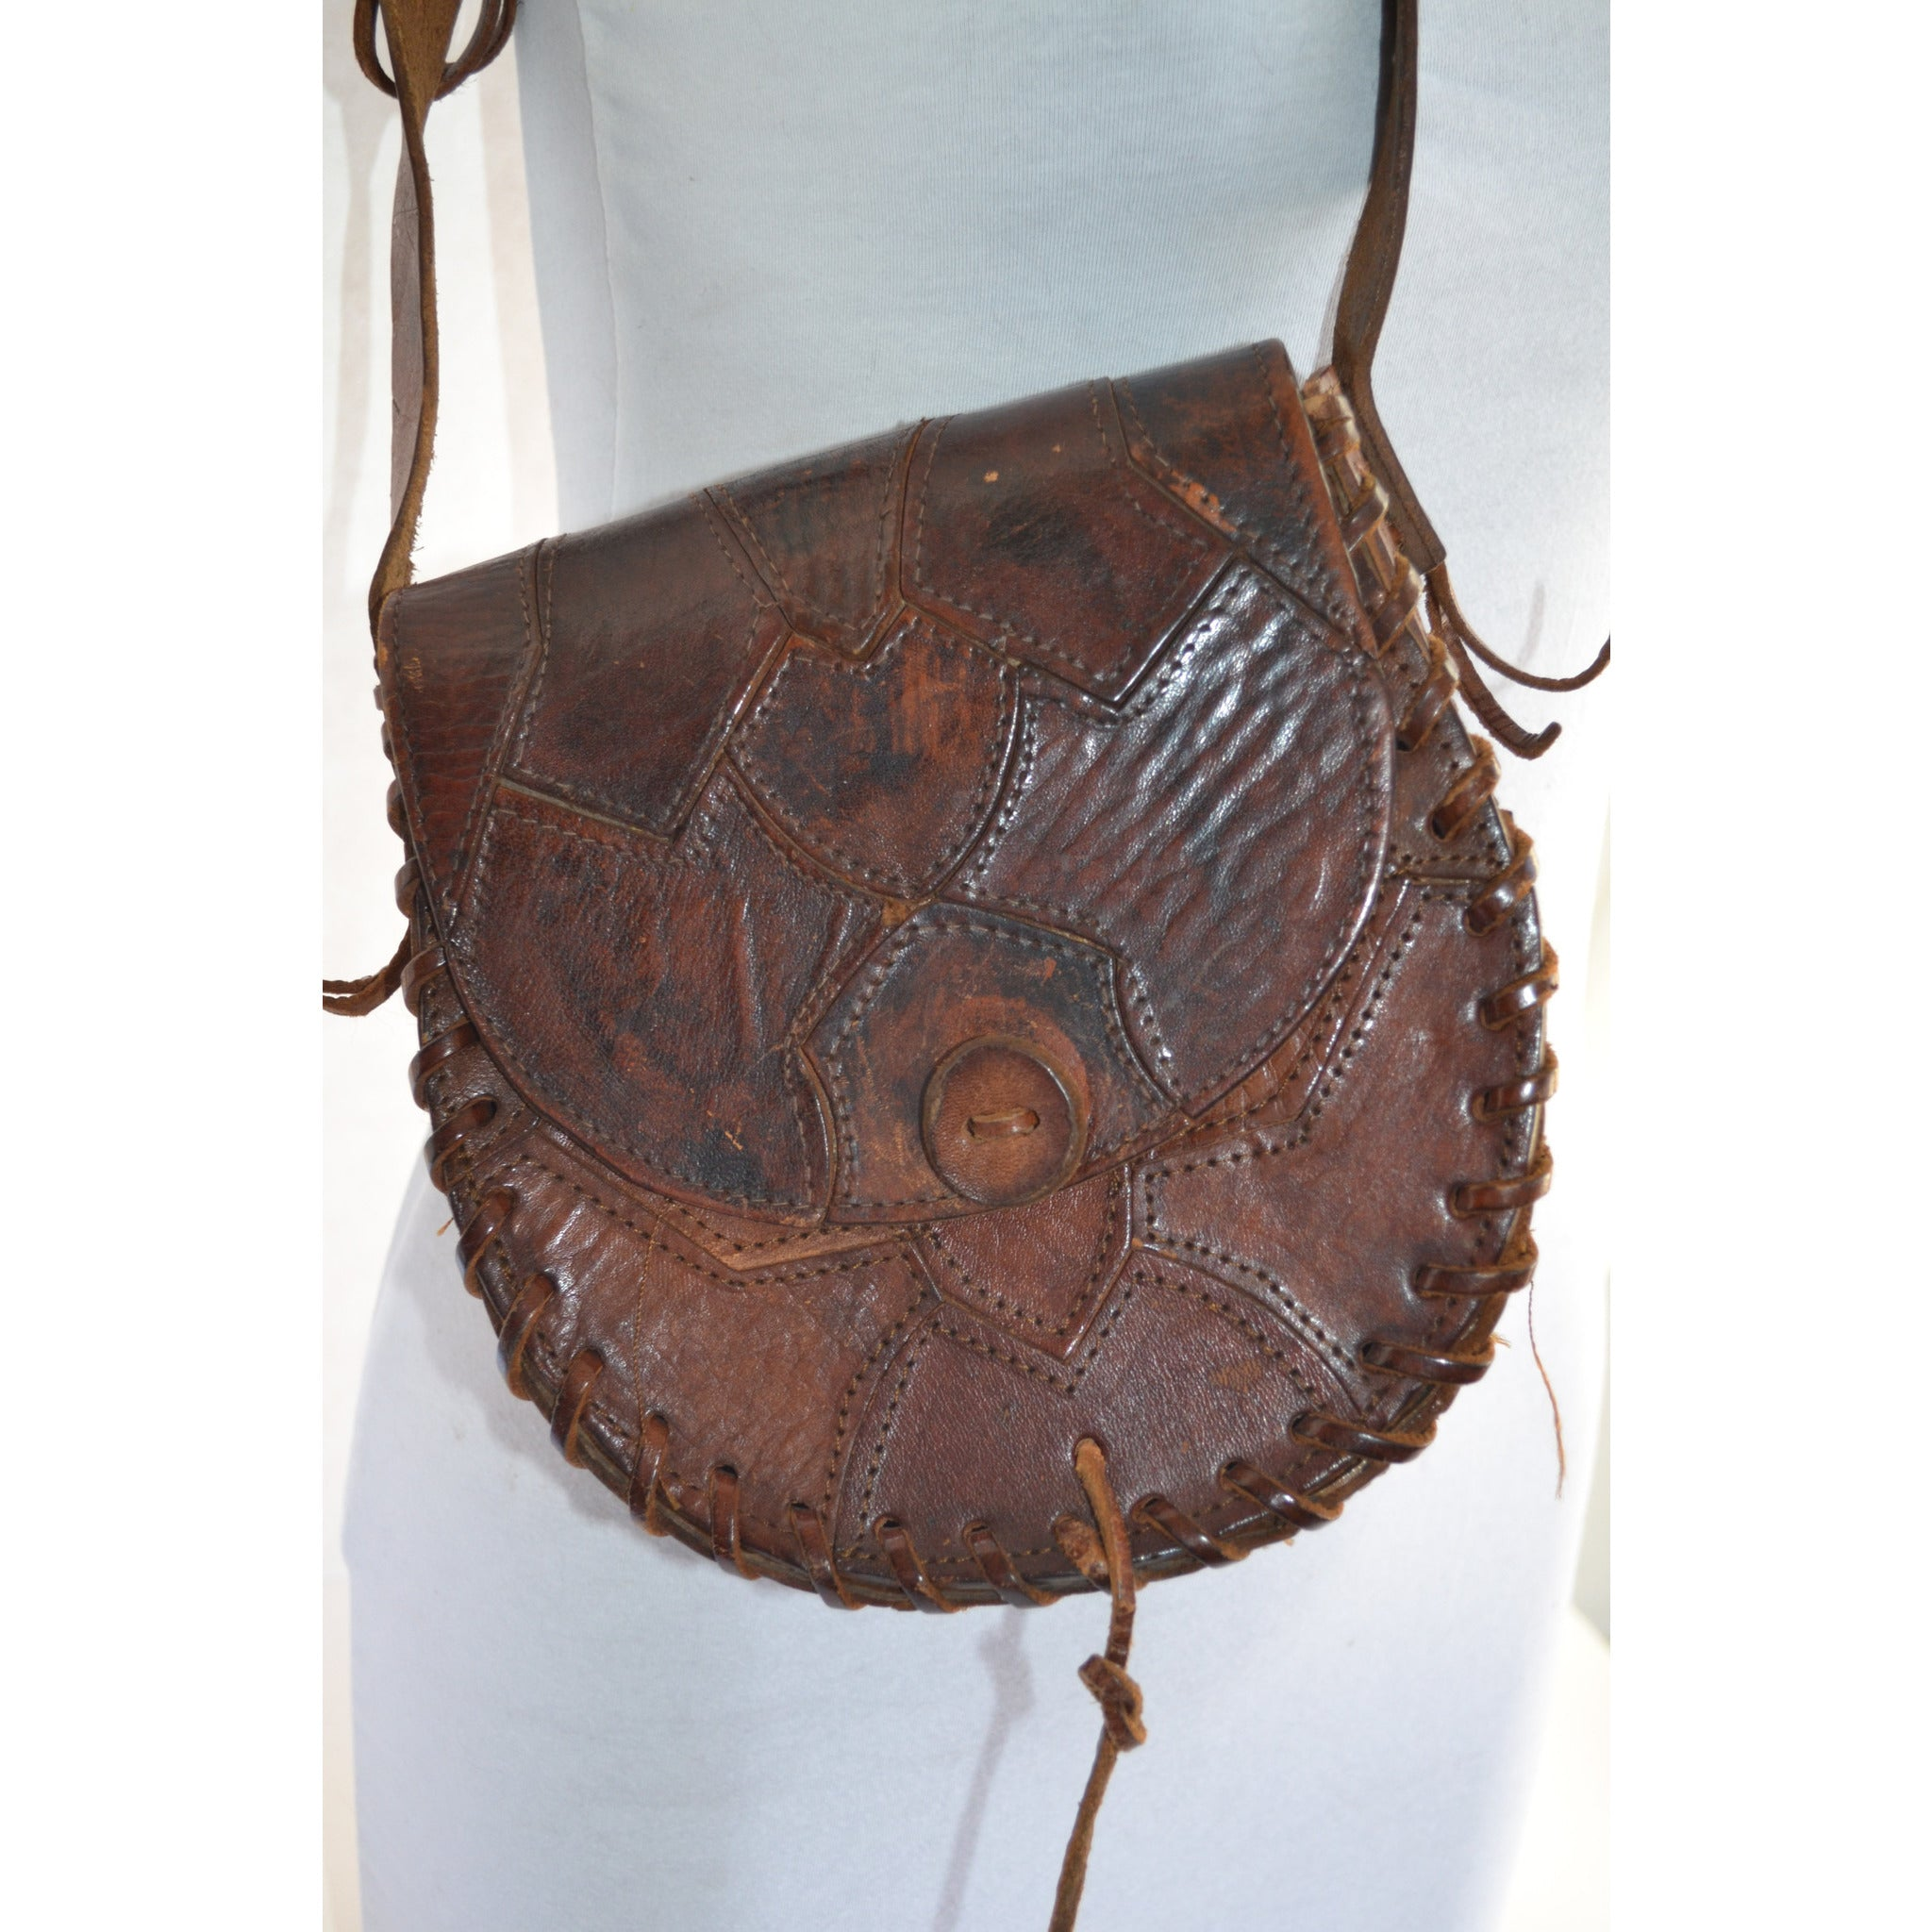 Vintage Patched Leather Hippy Bag Purse - Spain